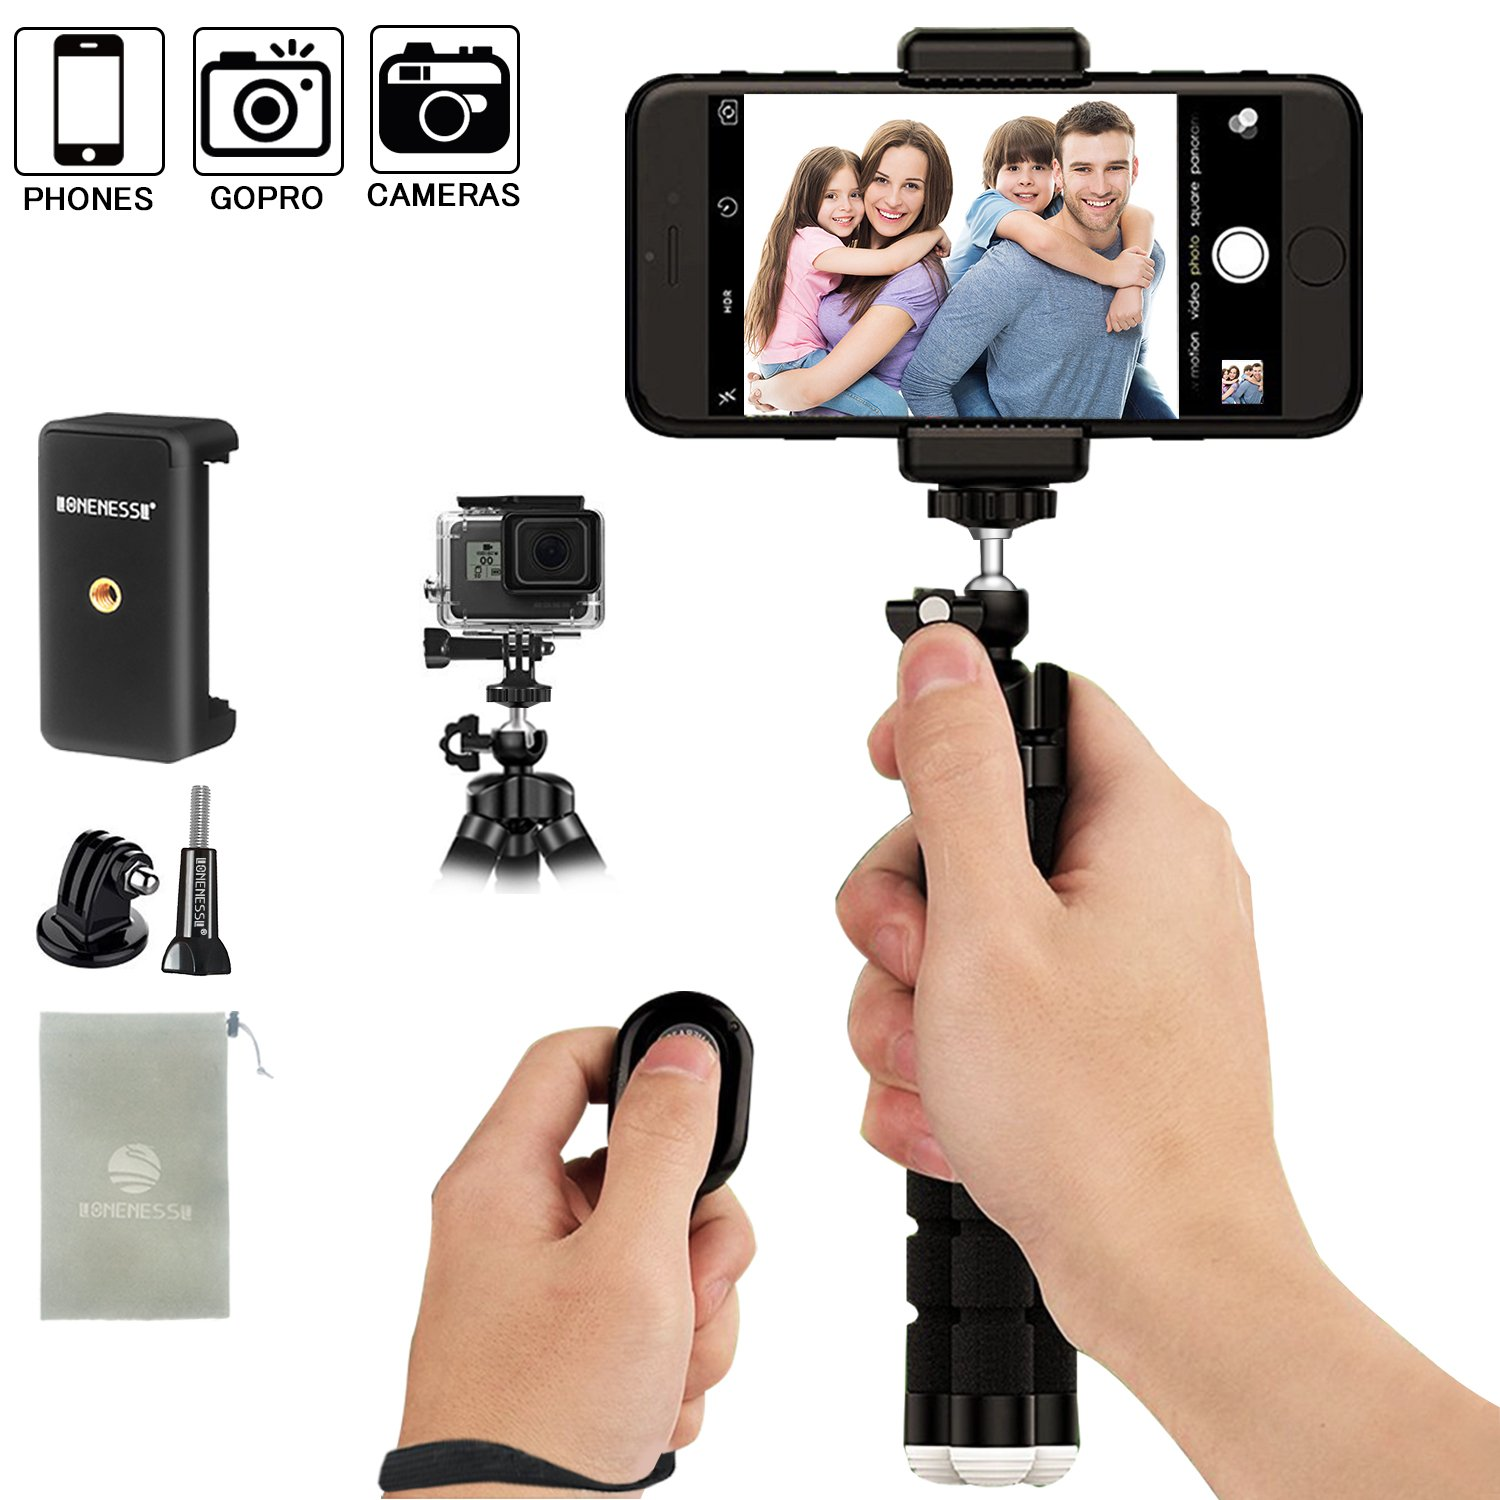 Lonenessl I Phone Tripod Phone Tripod, Bold And Strong Tripod Legs,Mini Cell Phone Tripod Camera Stand Holder And Universal Clip For I Phone Stand With Bluetooth Remote For I Os Android Smartphone by Lonenessl